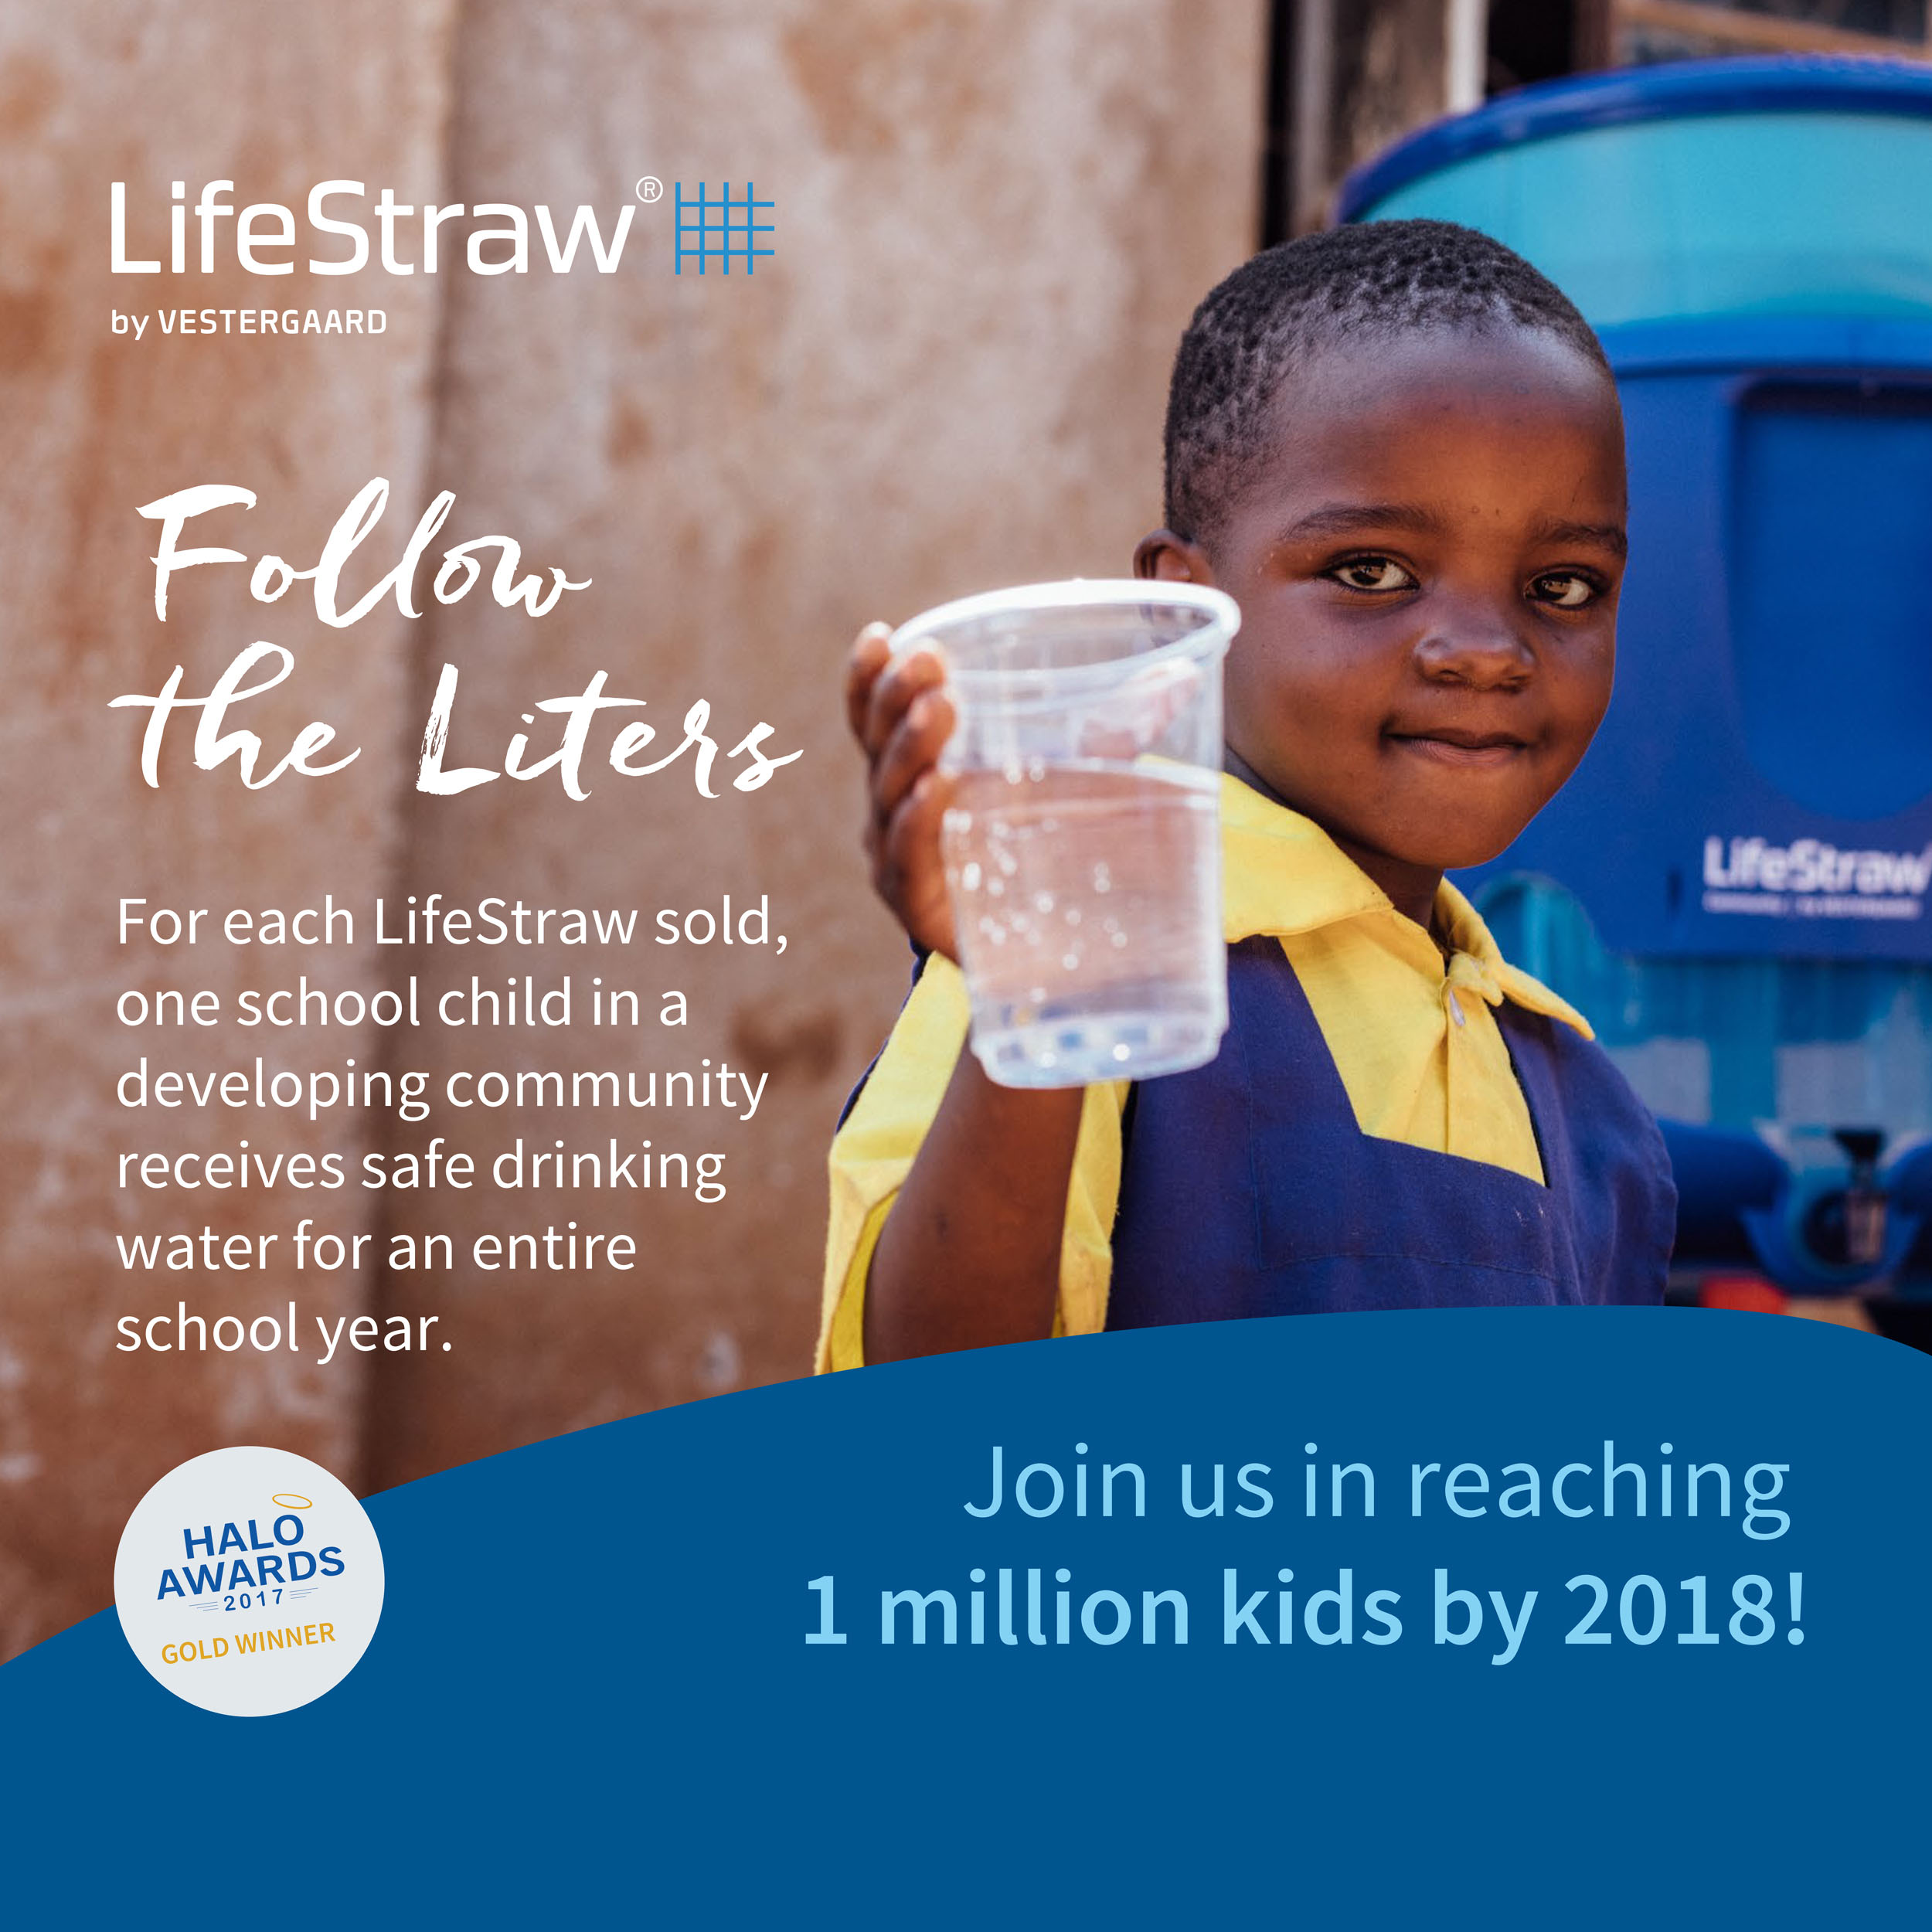 Akcja Life Straw Follow the Liters